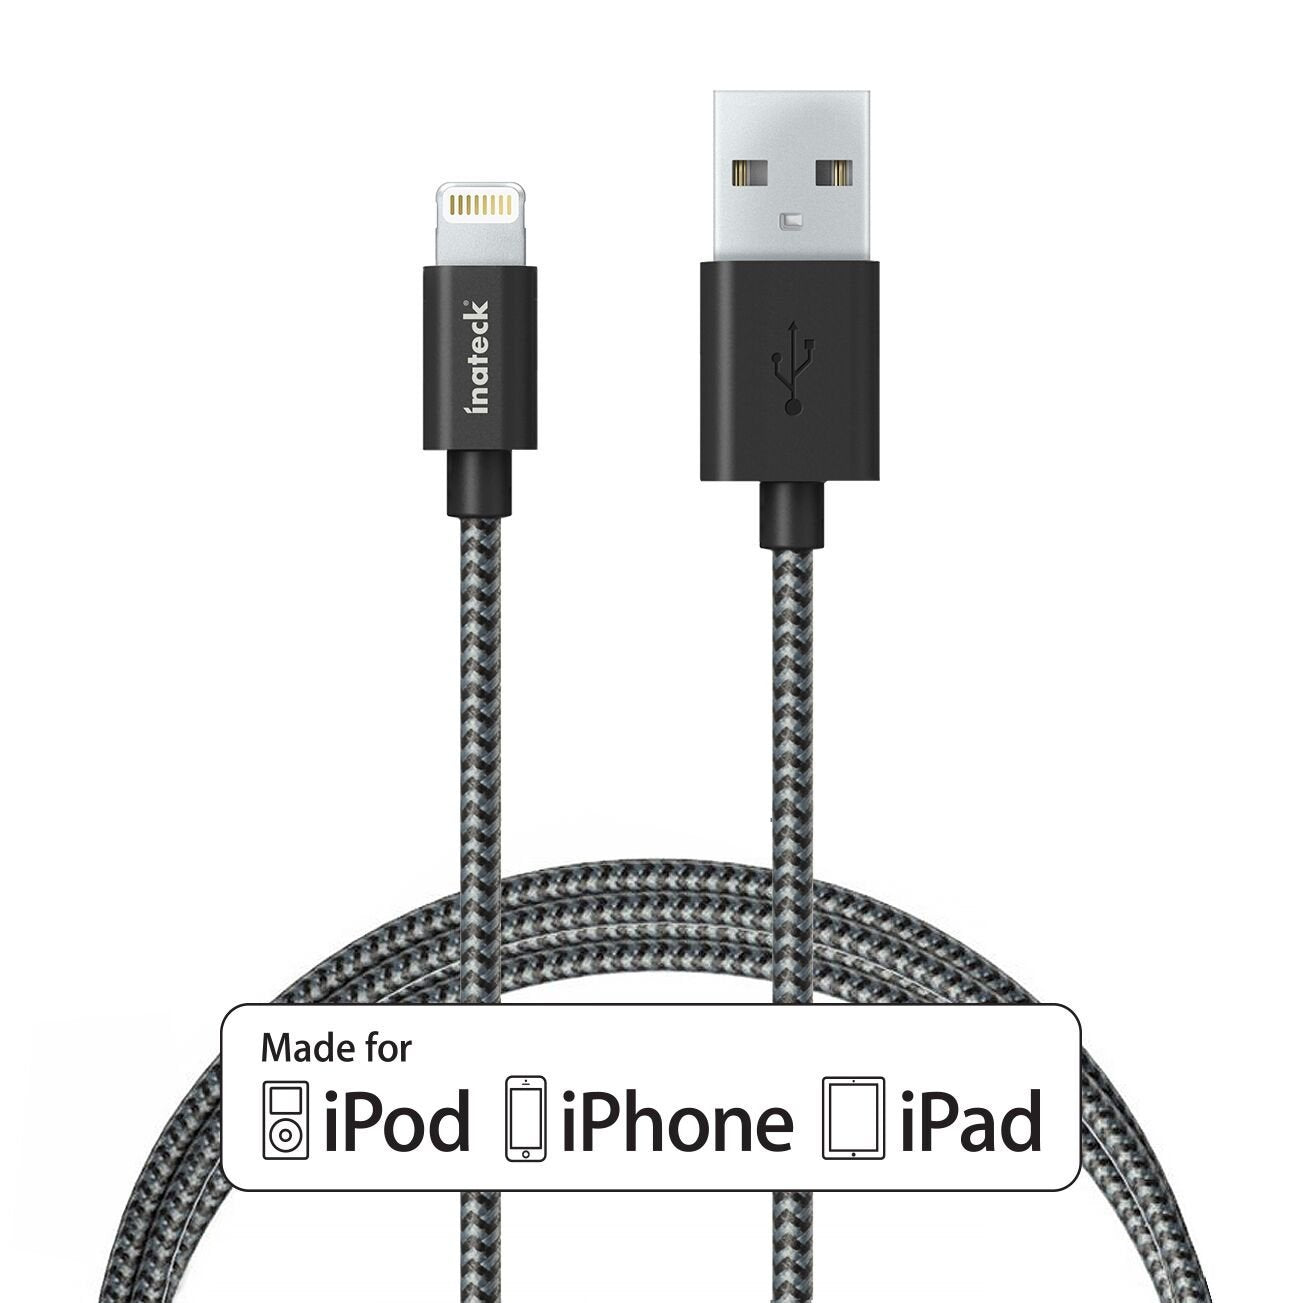 [Apple MFi Certified] 2 Pack of 6ft/1.8m Lightning Cable LG1800B